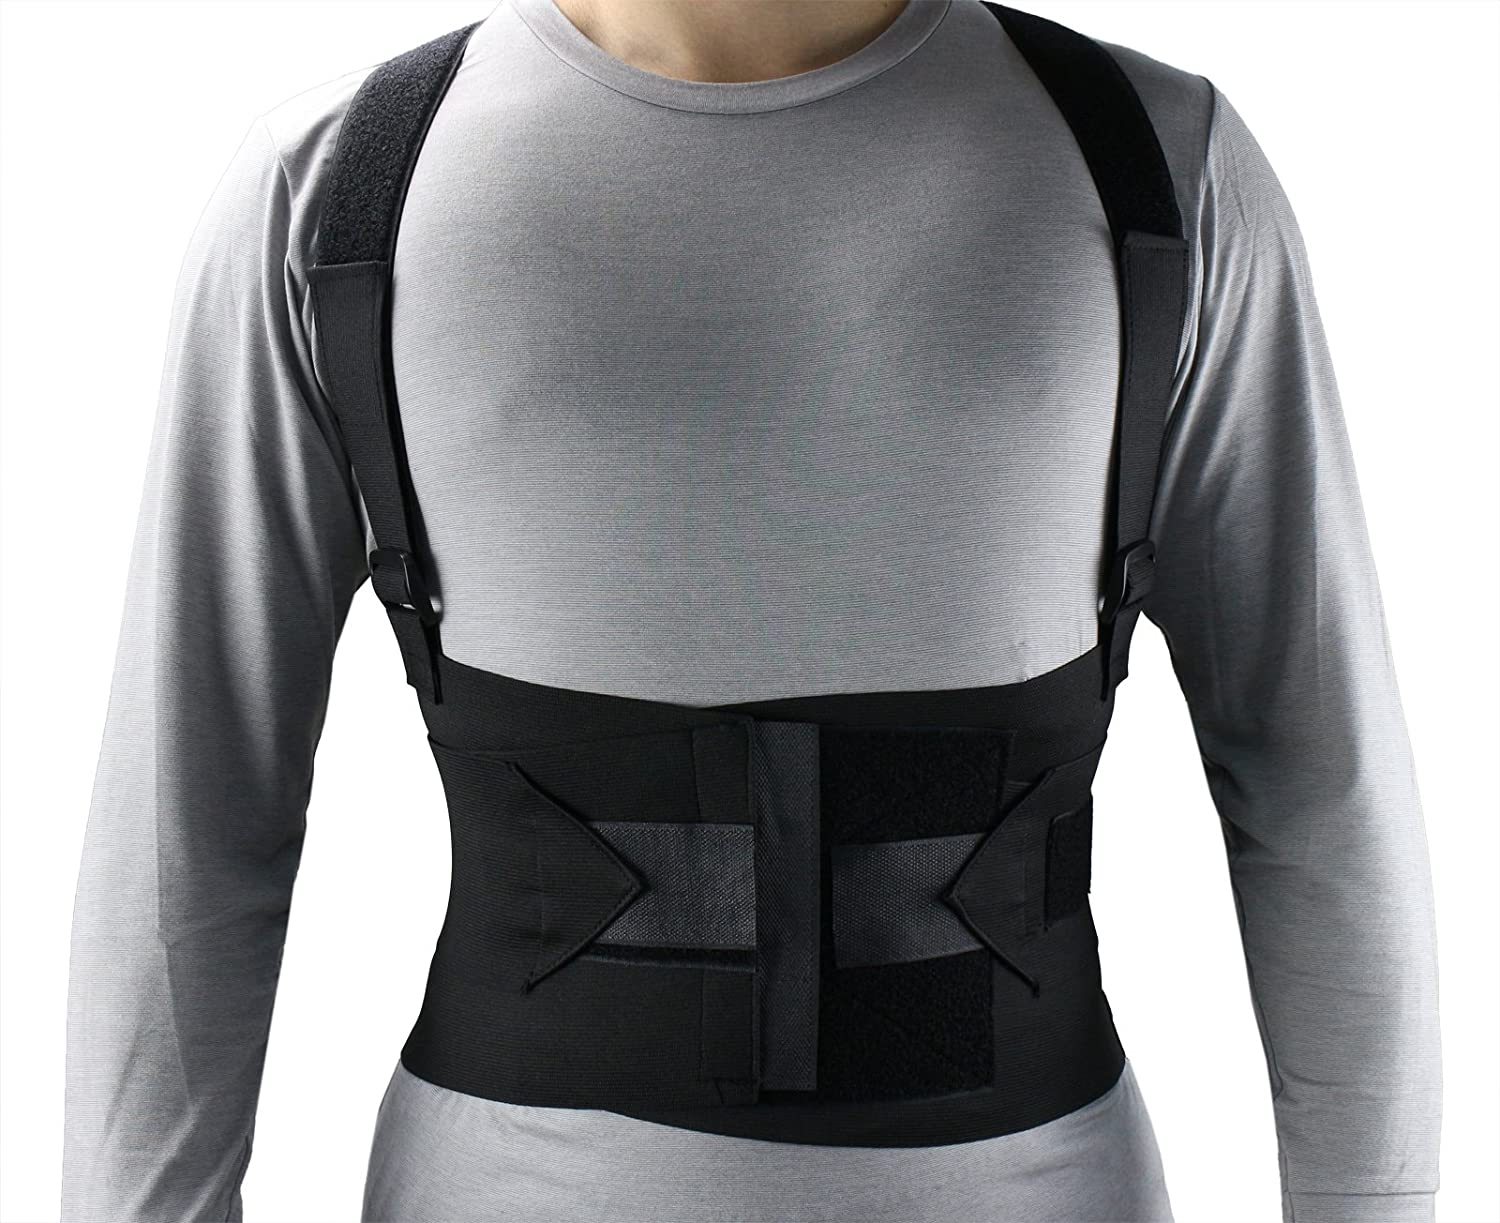 ObboMed MB-2845NM Industrial Back Wrap Max Sale price 73% OFF Support Abdominal Lumbar